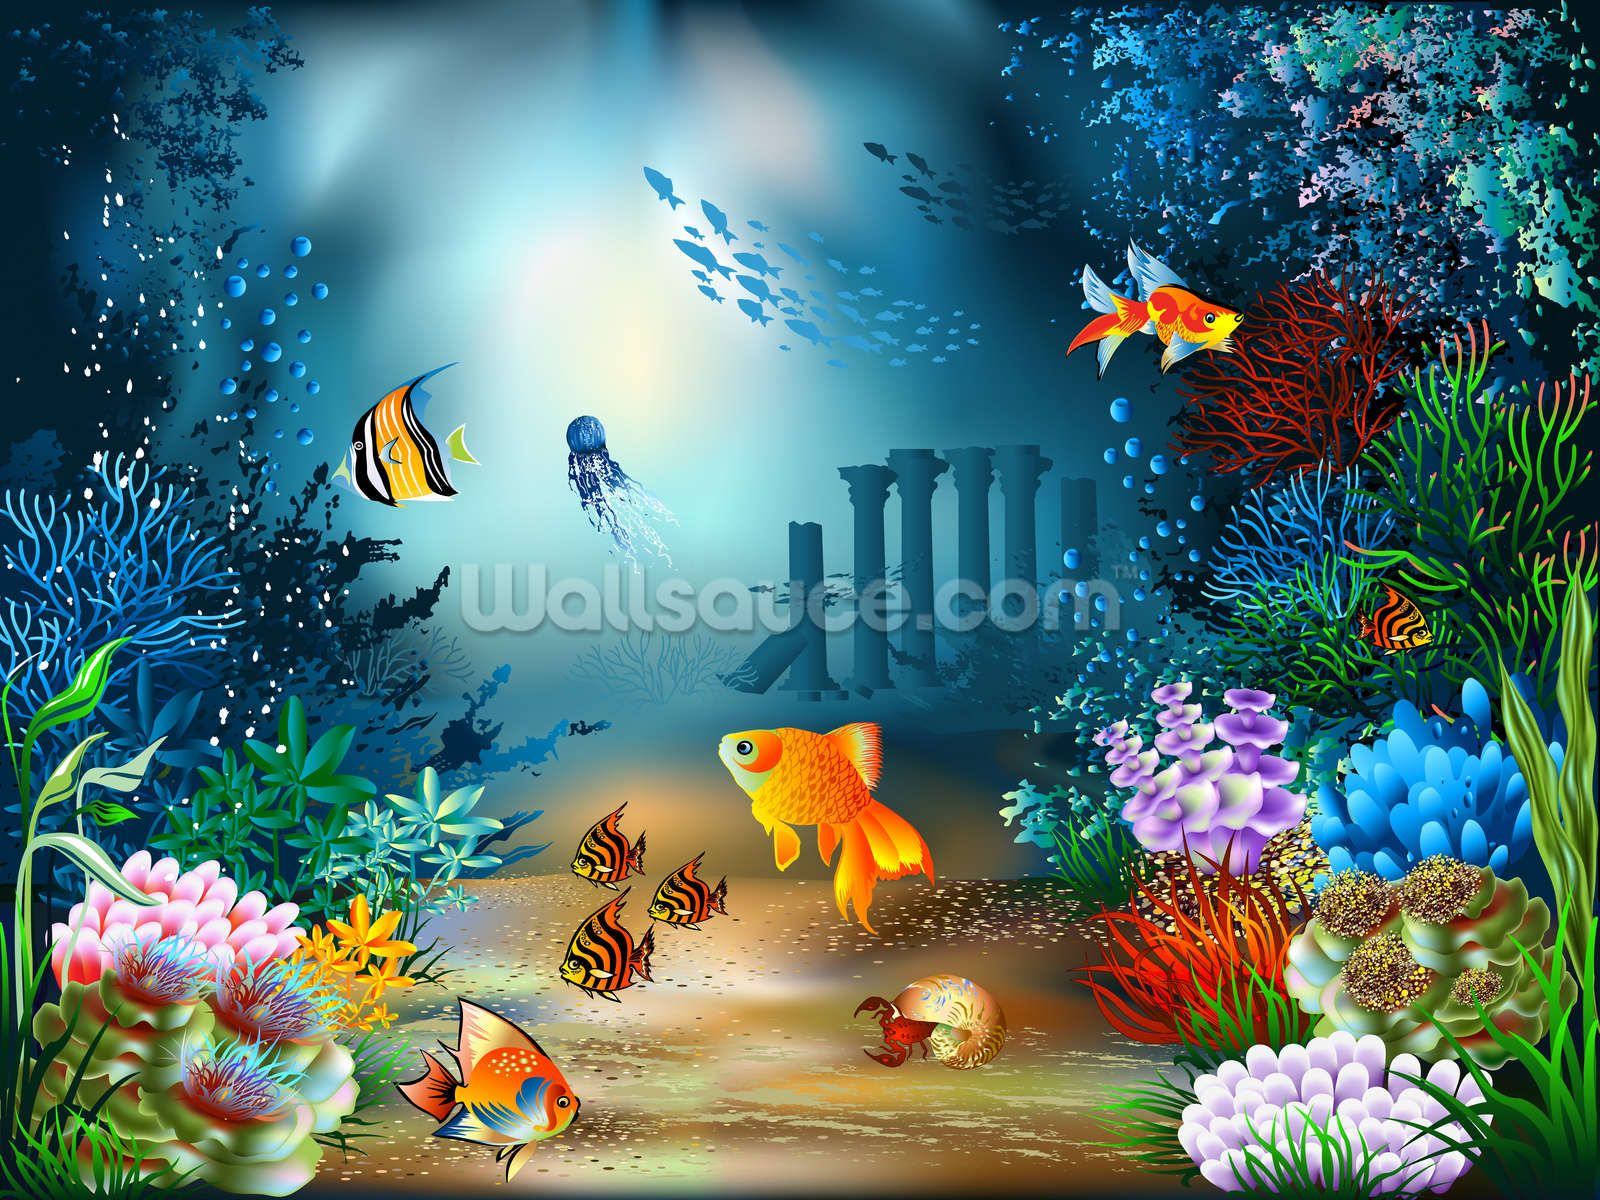 Underwater World Wall Mural Wallsauce Us Underwater Wallpaper Underwater World Christmas Photography Backdrops